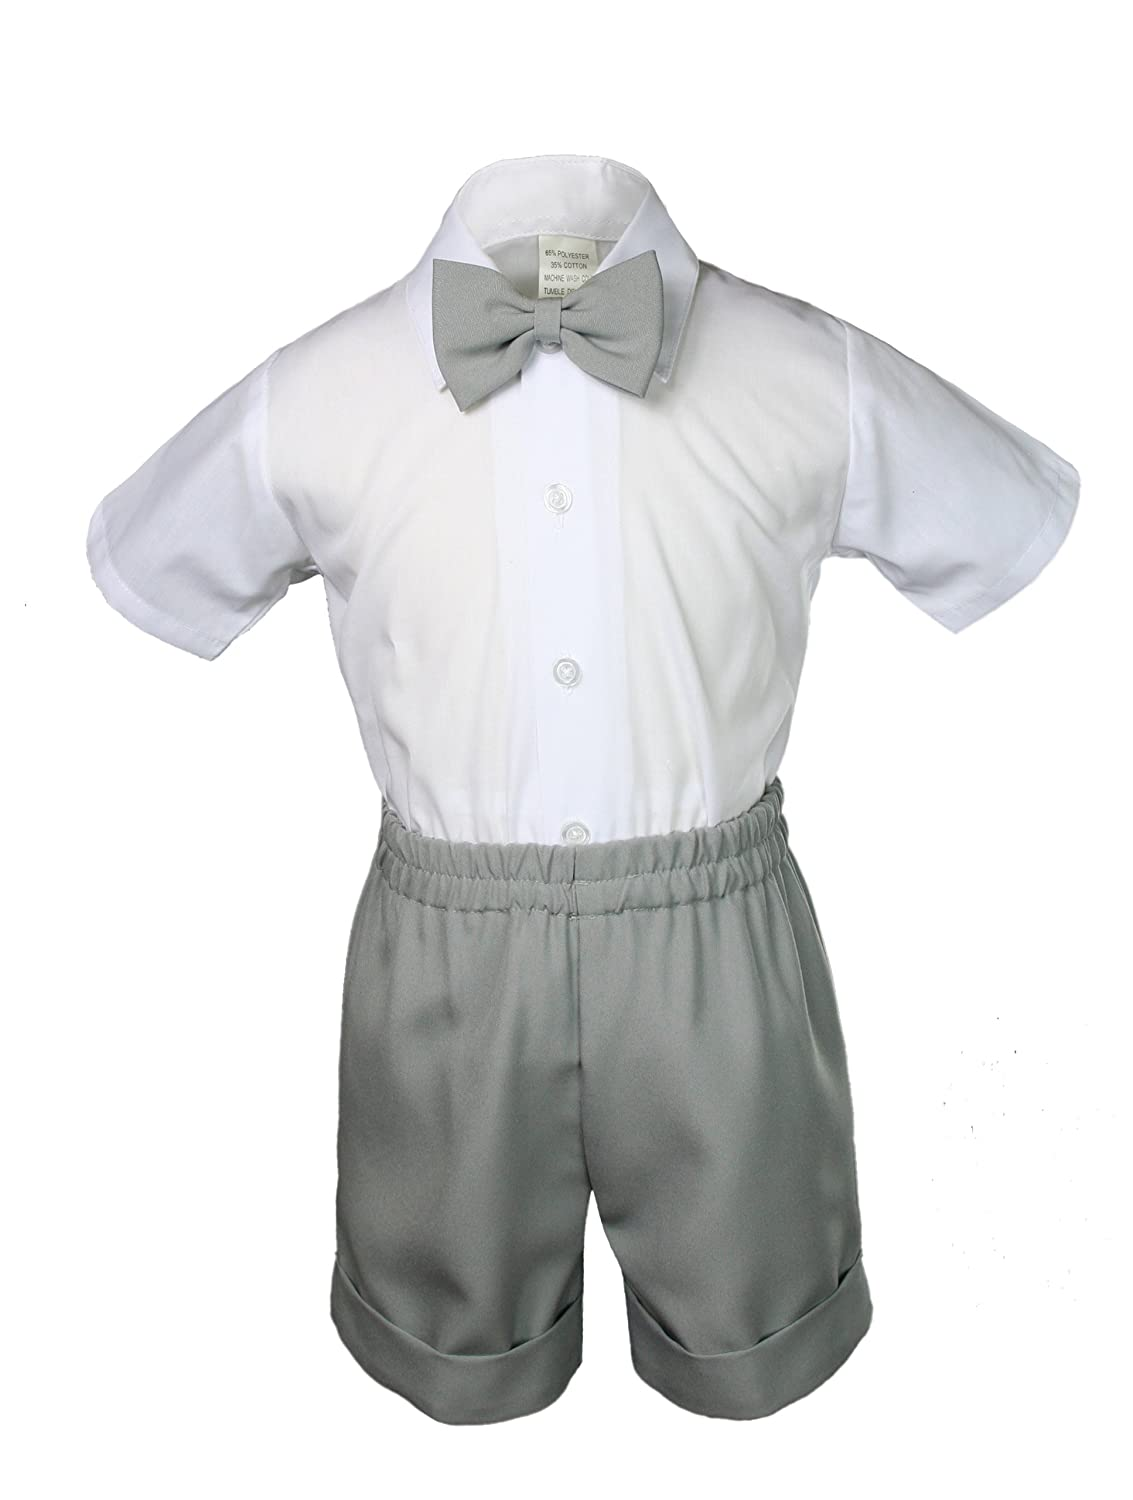 New Infant Boy /& Toddler Formal Vest shorts Suit New born to 4T Stone Khaki